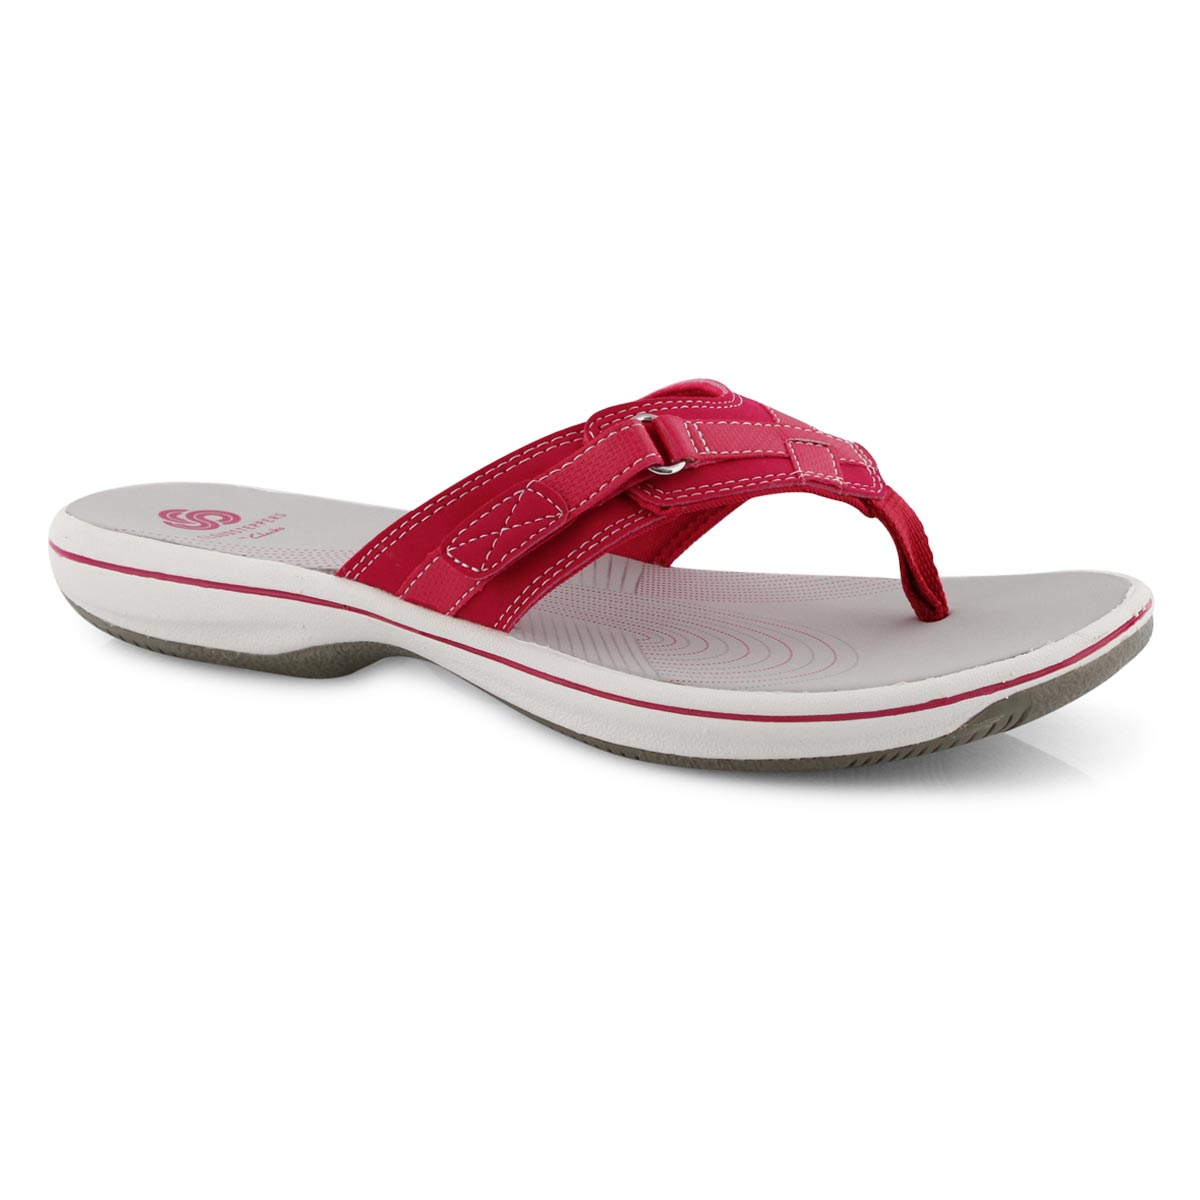 Lds Breeze Sea bright rose thong sandal